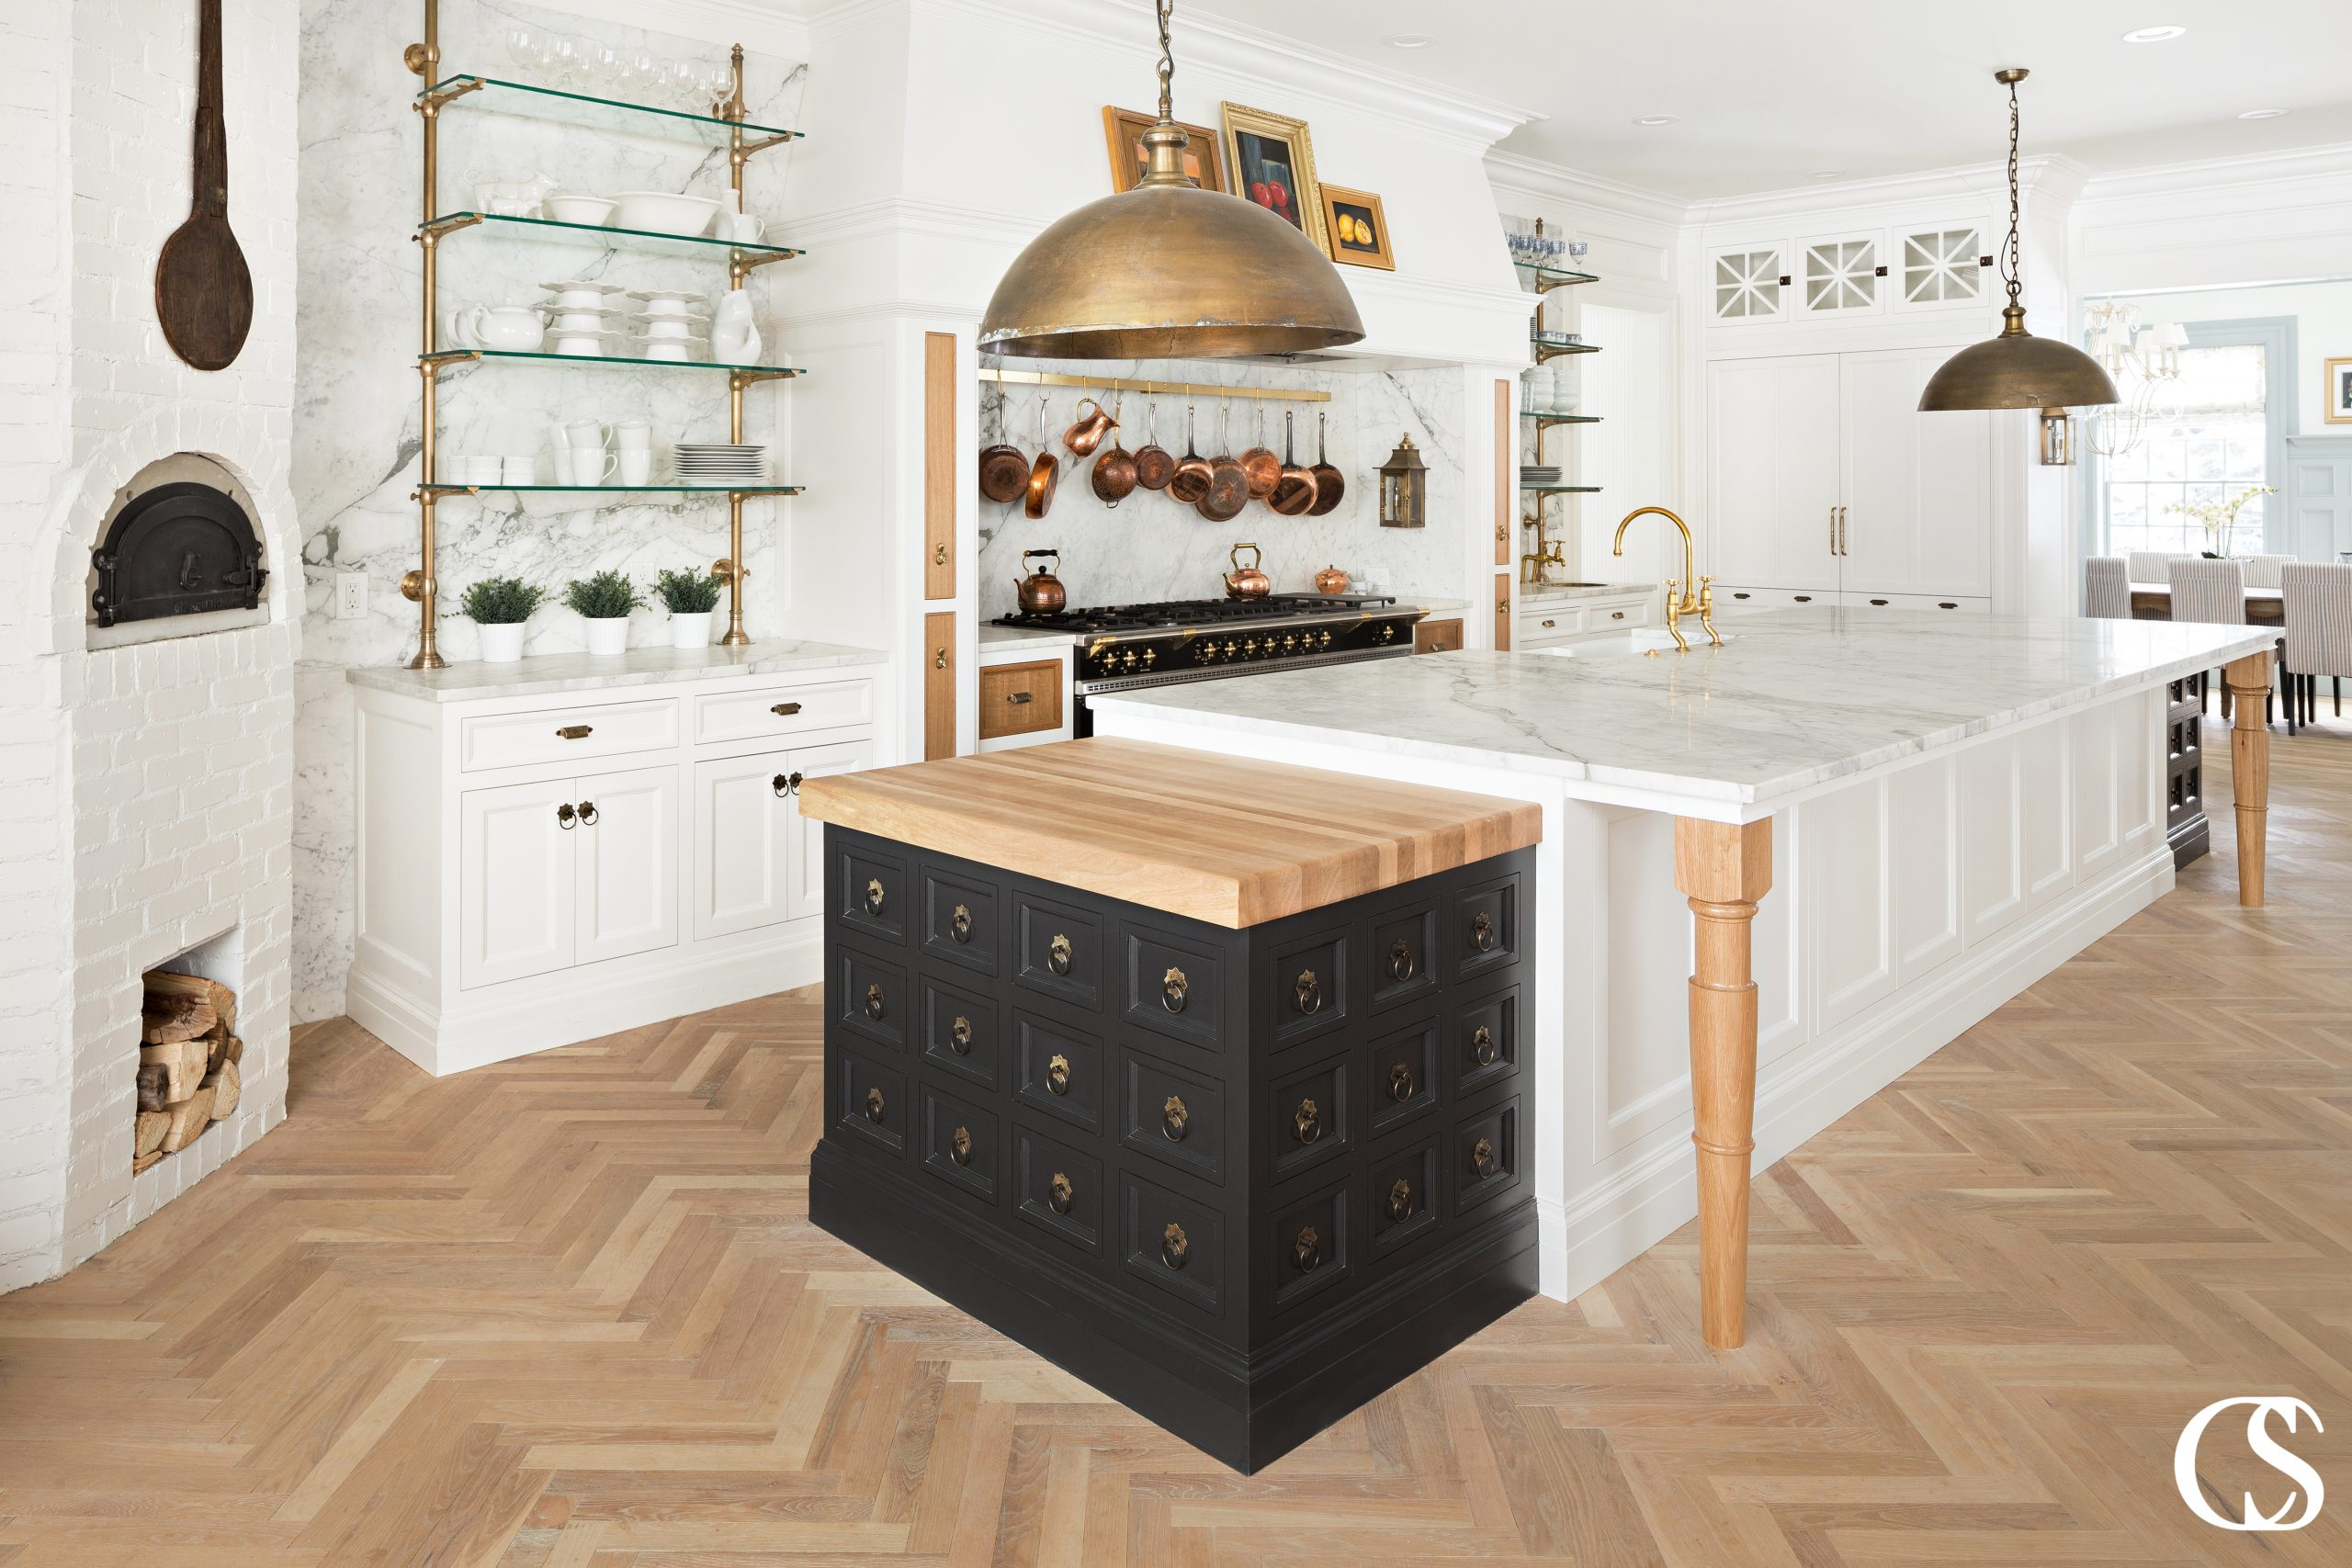 The very best kitchen island designs will ensure that you add more storage, more workable counter space, and more functionality to your kitchen. Plus, they'll look like a million bucks.